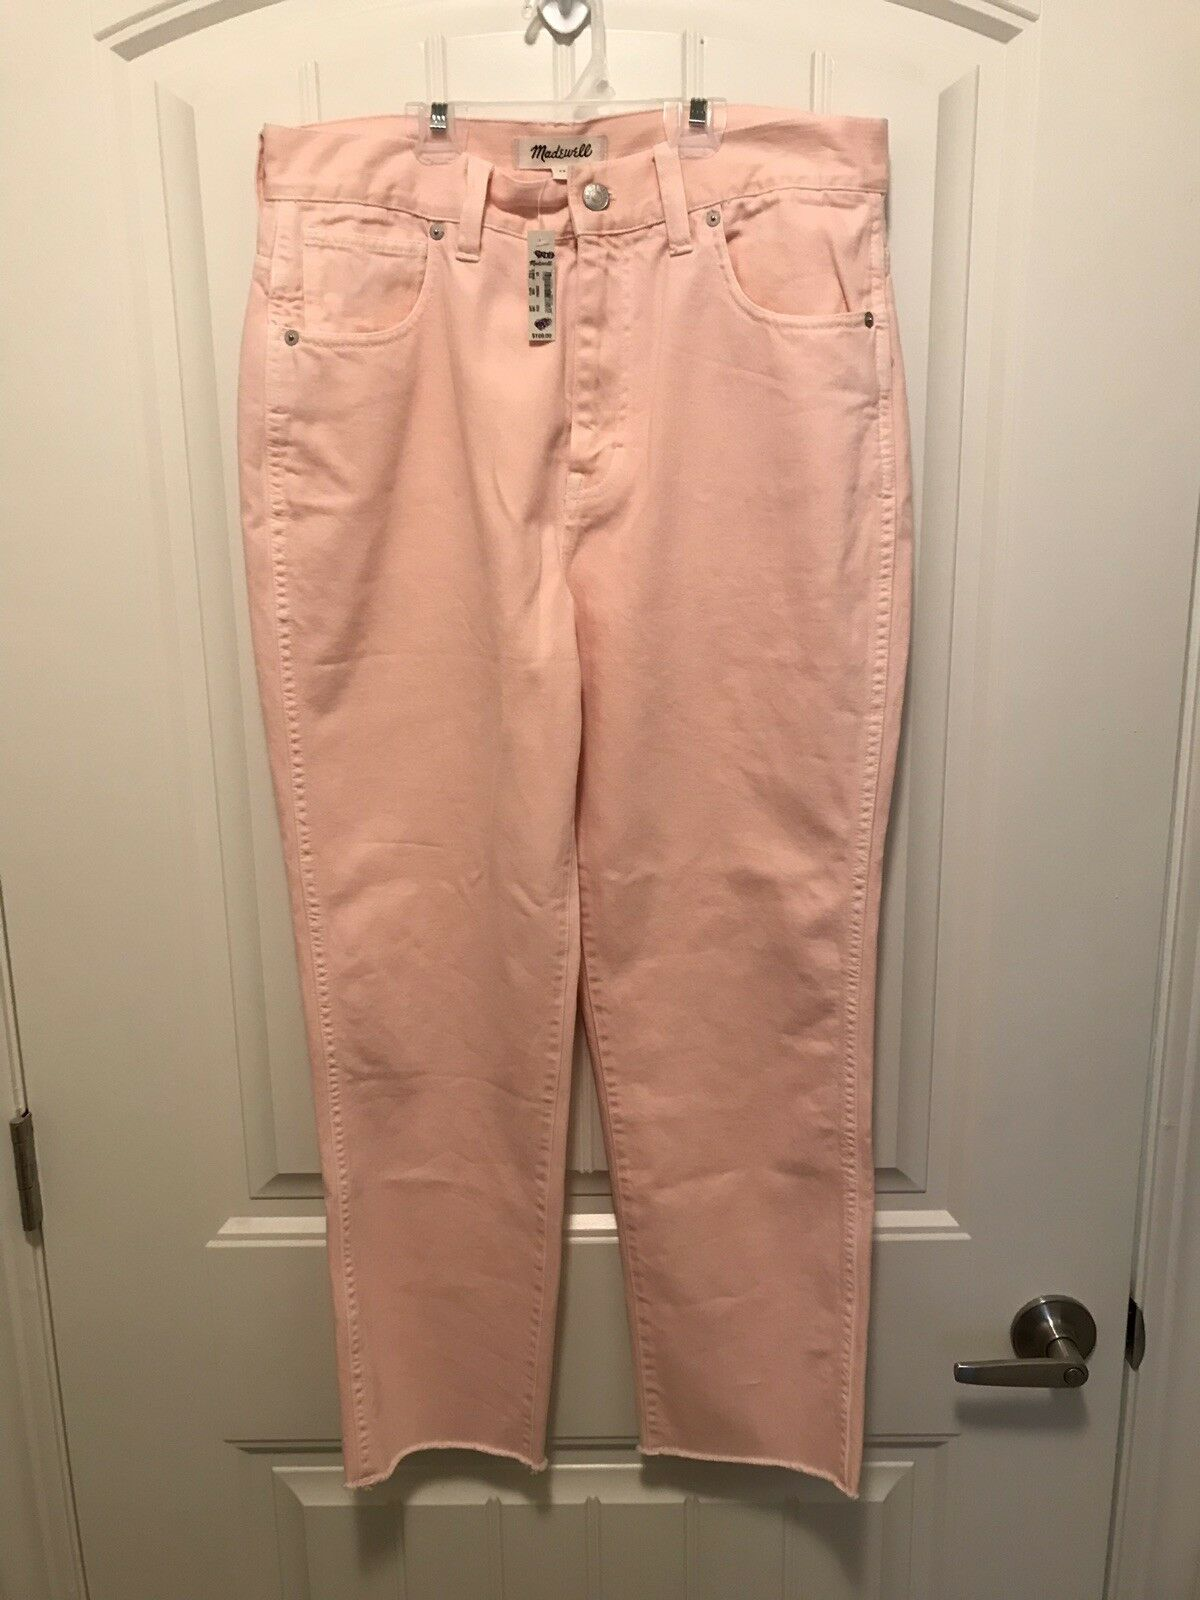 NWT Madewell Garment-Dyed Straight-Leg High-Rise Jeans in Coral Pink size 29